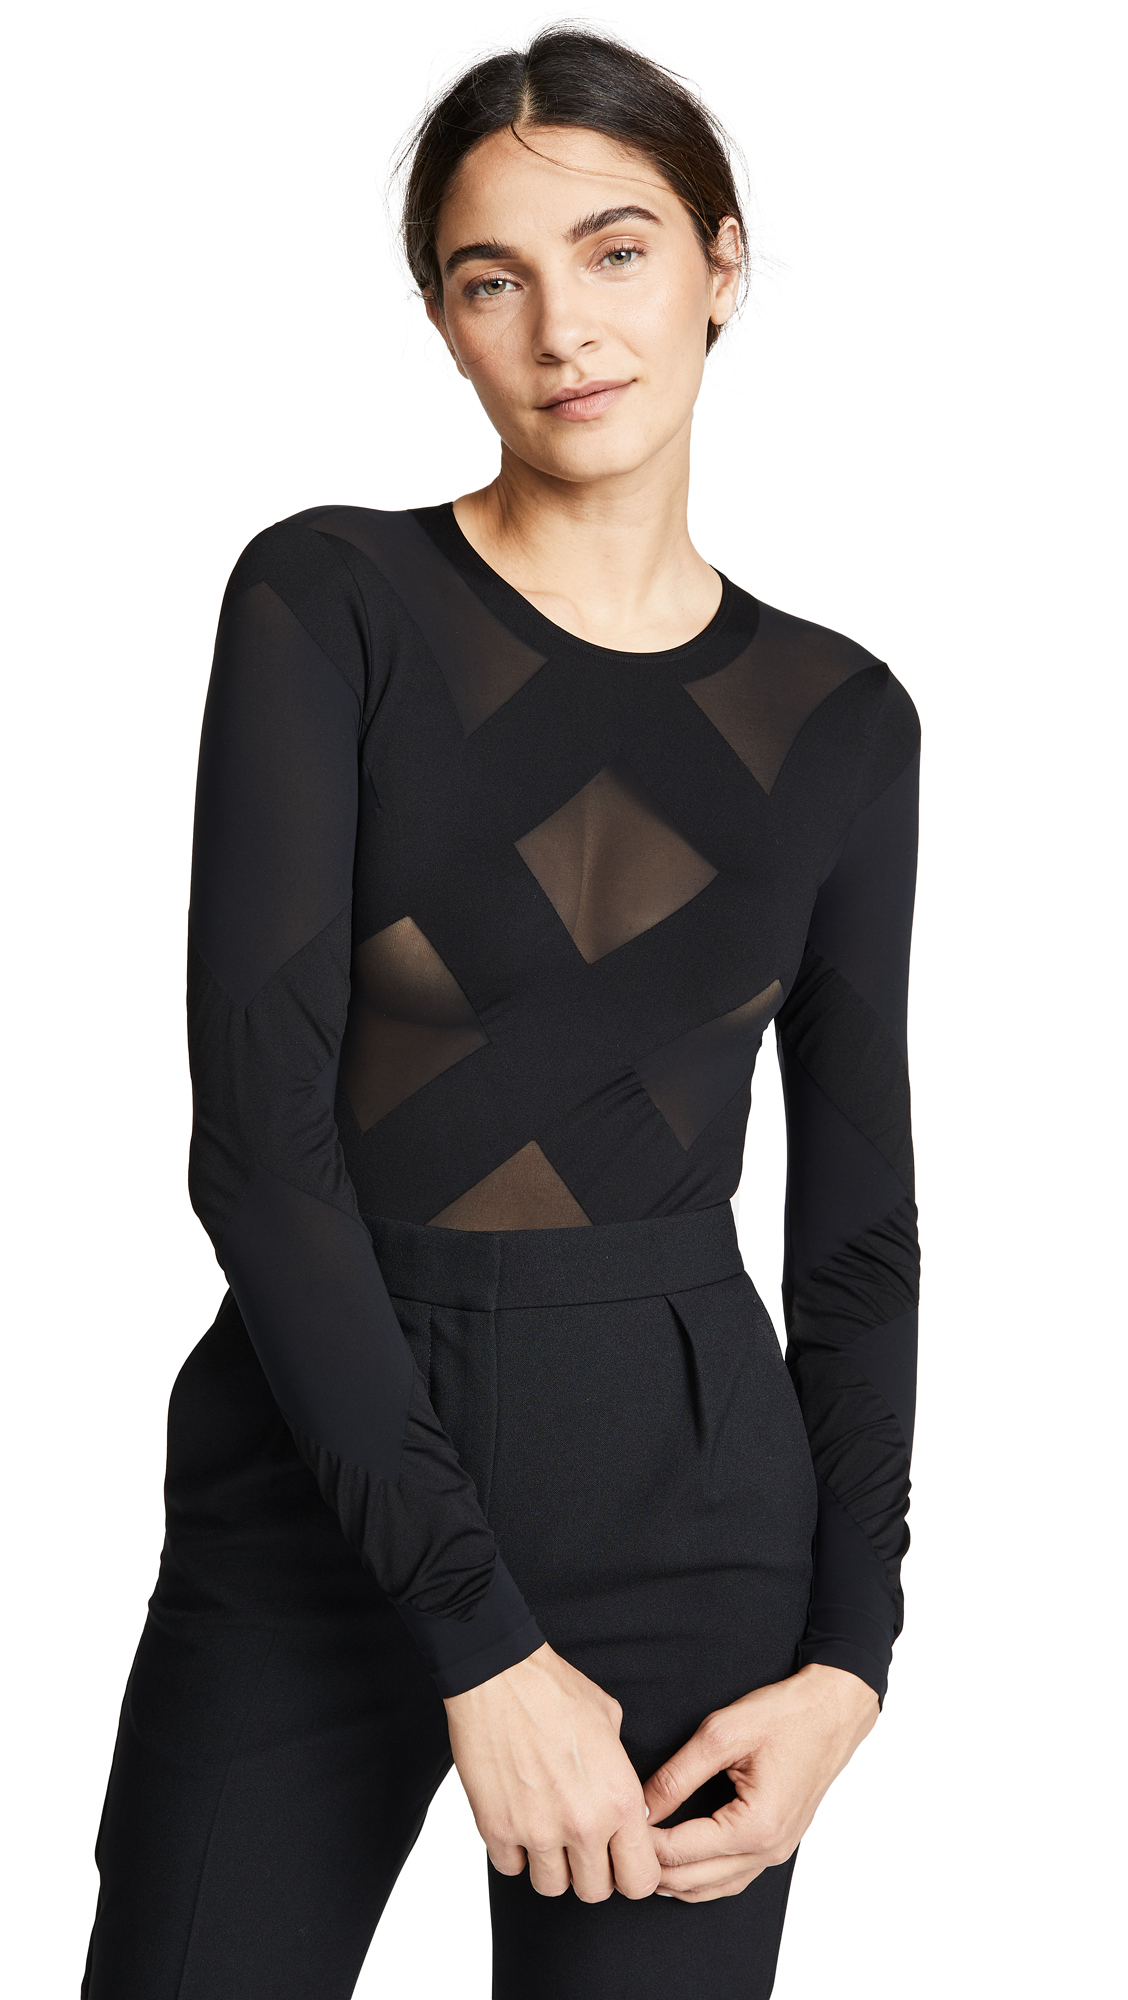 Wolford Anita String Bodysuit In Black/Black